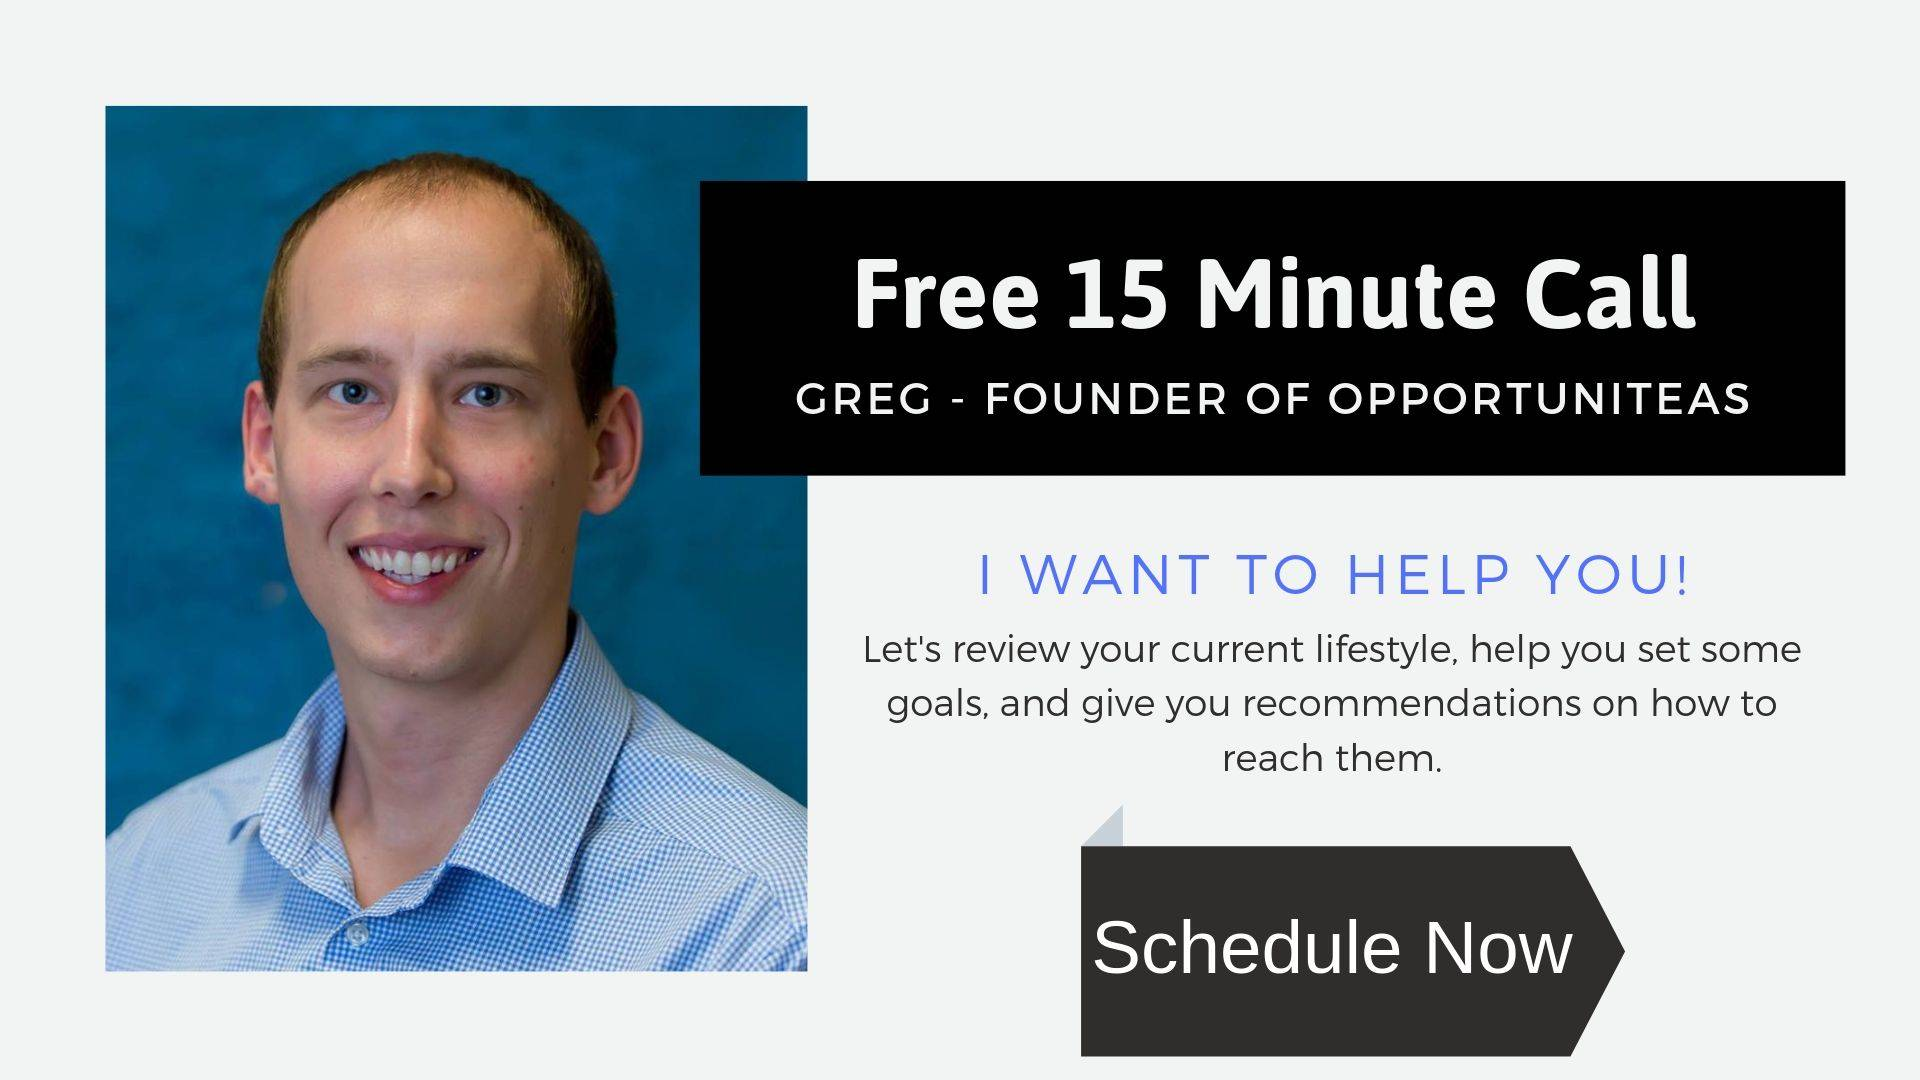 Free 15 minute call with Greg.